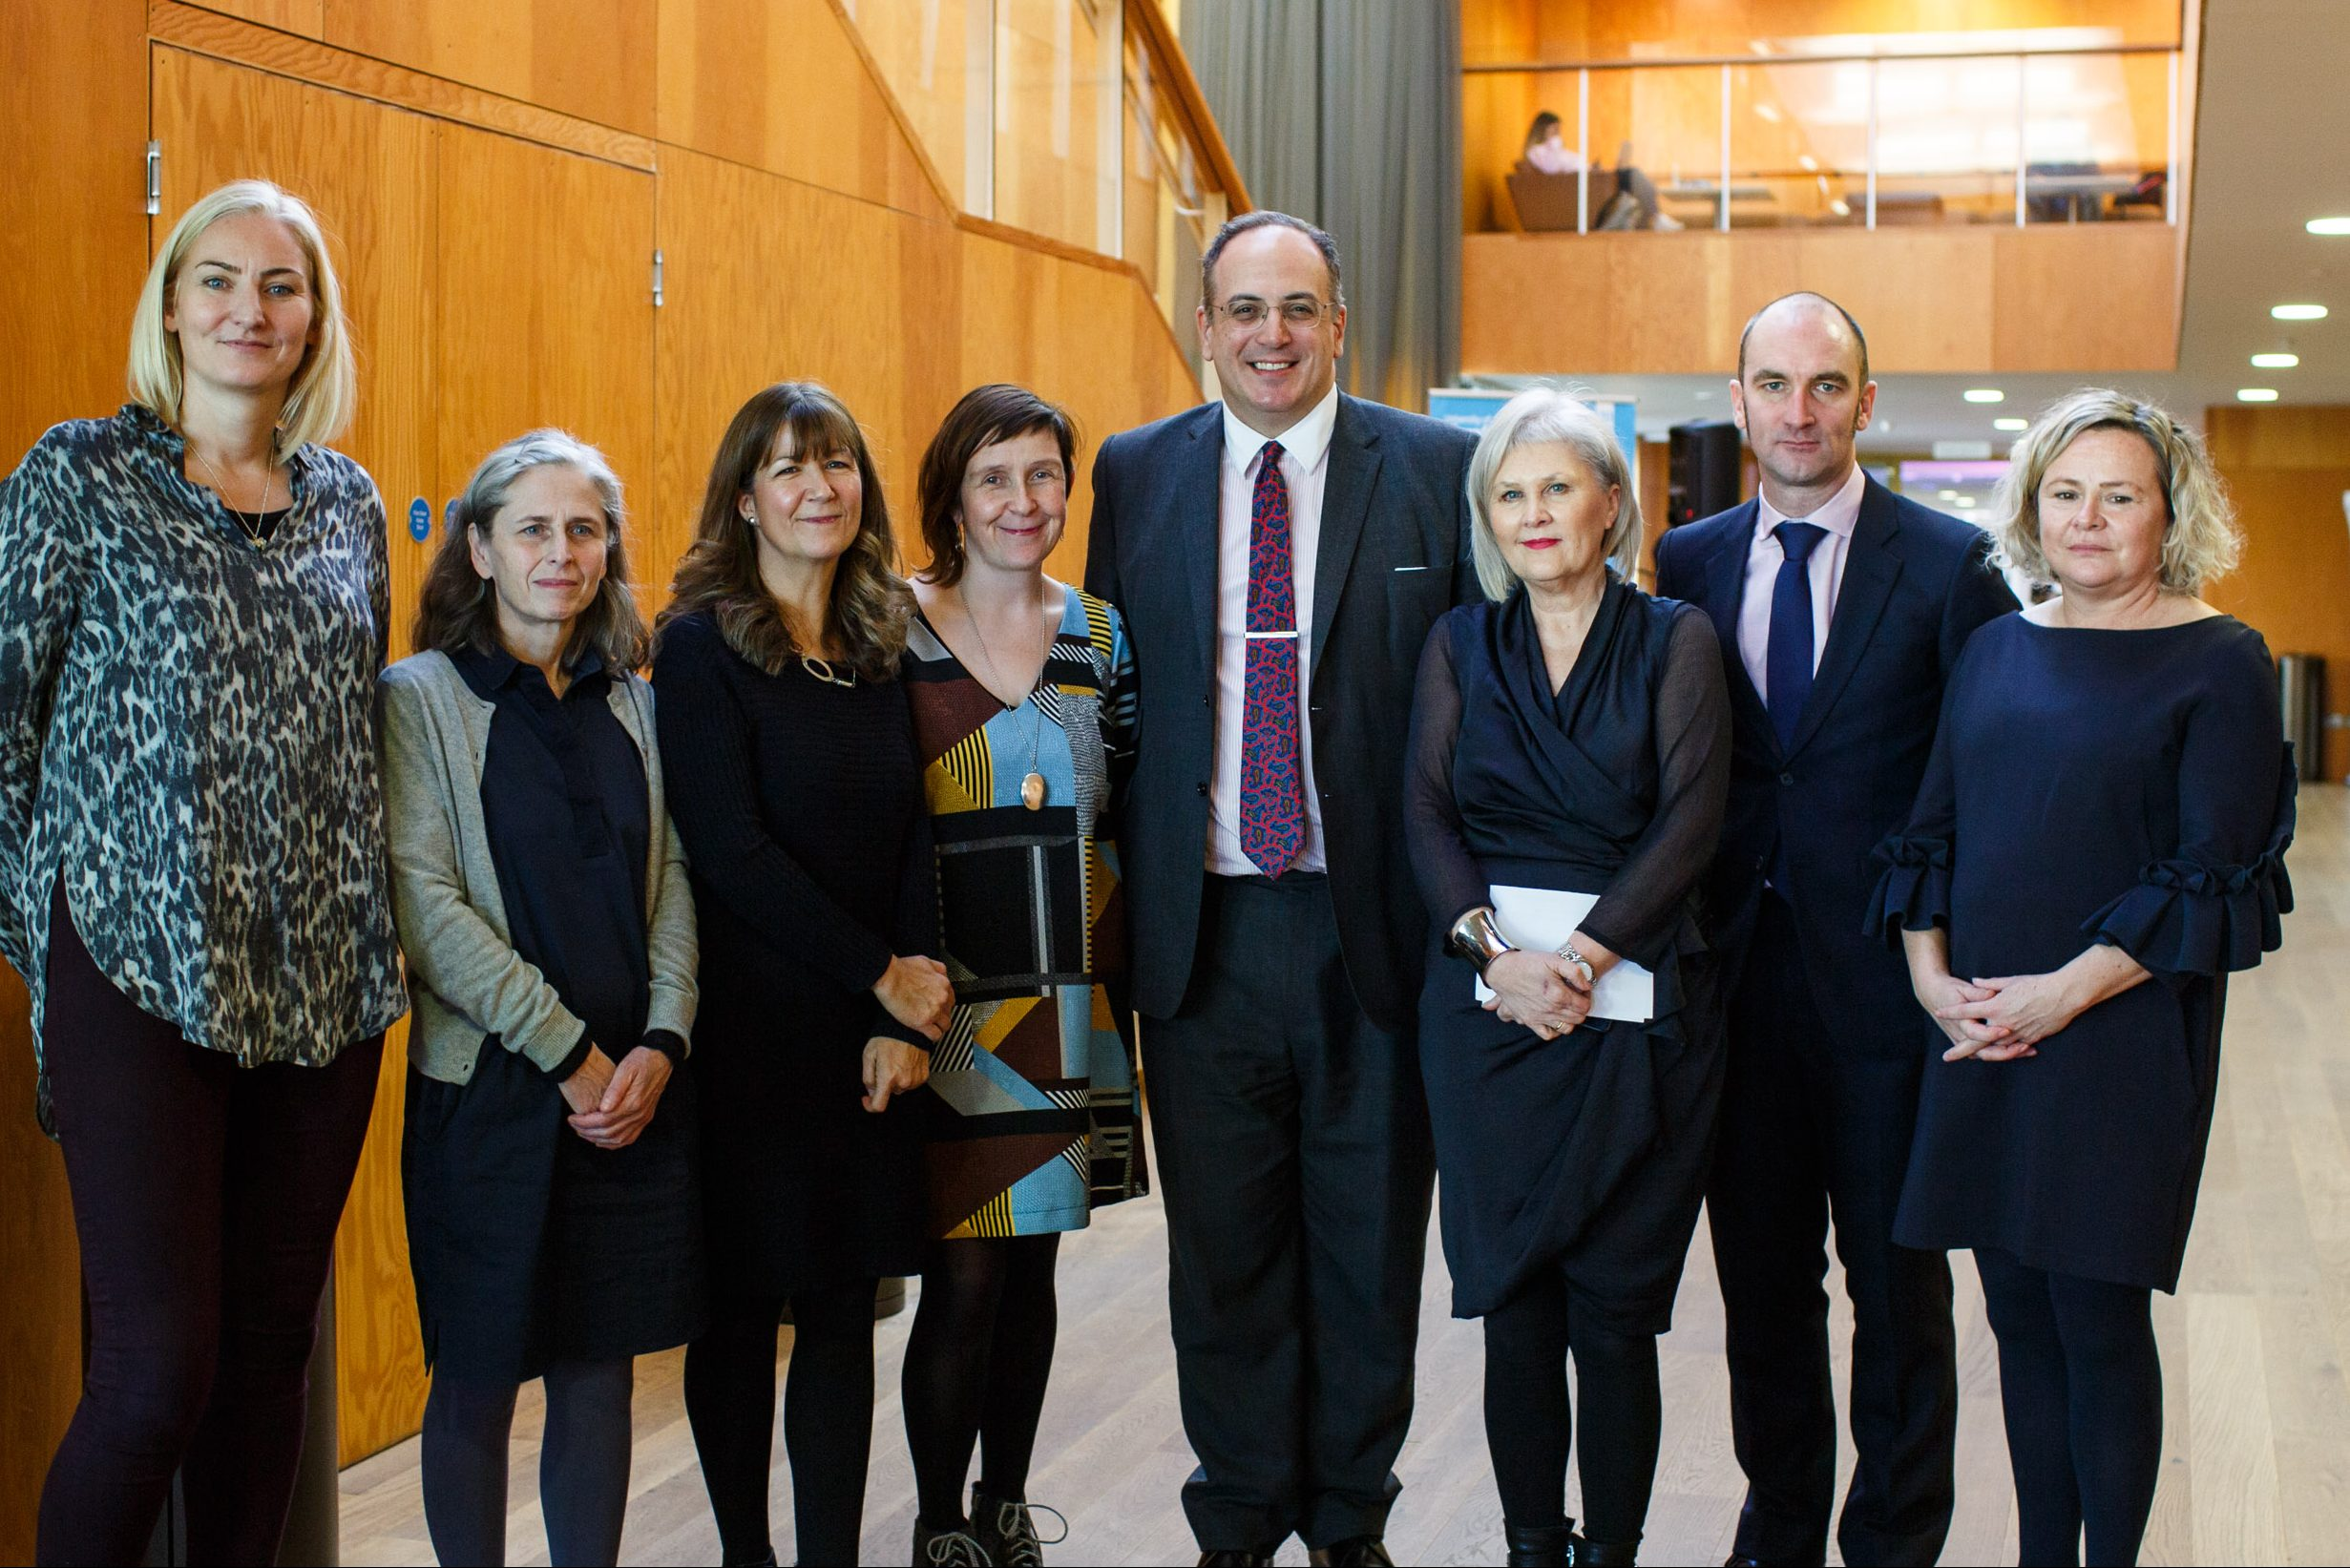 Michael Ellis MP visited the University to announce the successful funding bid